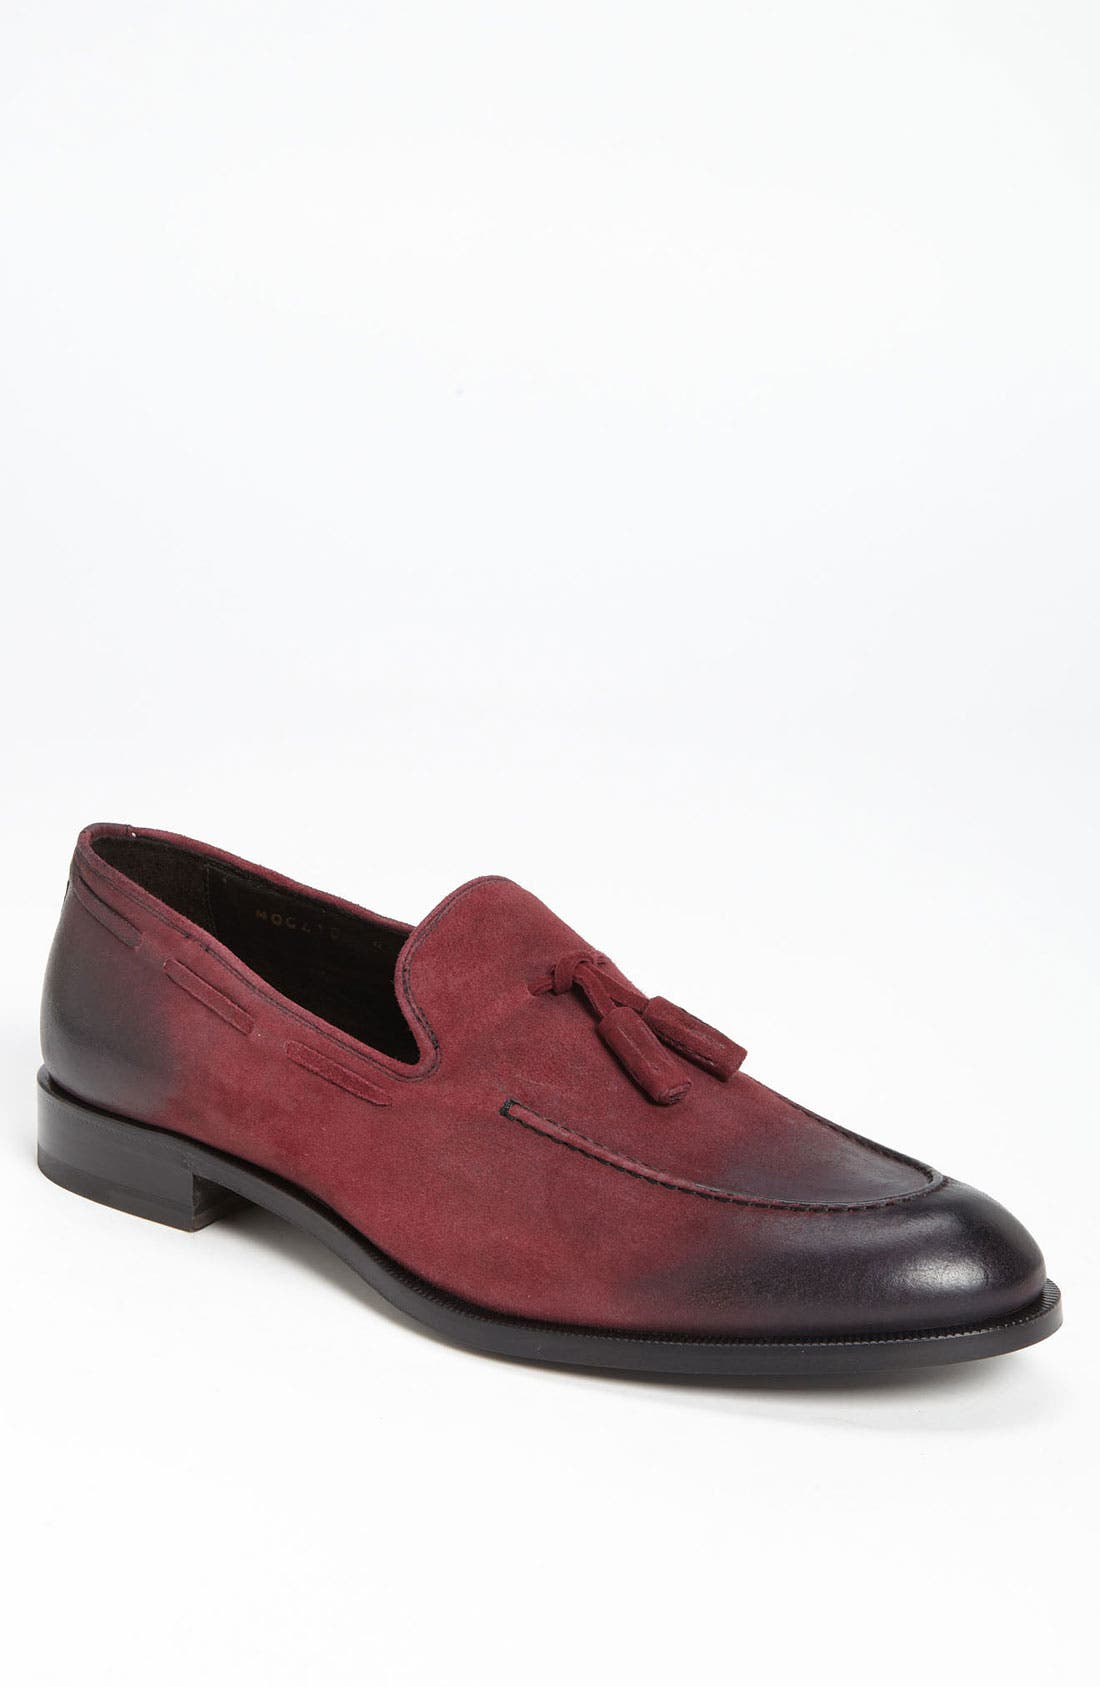 Alternate Image 1 Selected - Bruno Magli 'Maggio' Tassel Loafer